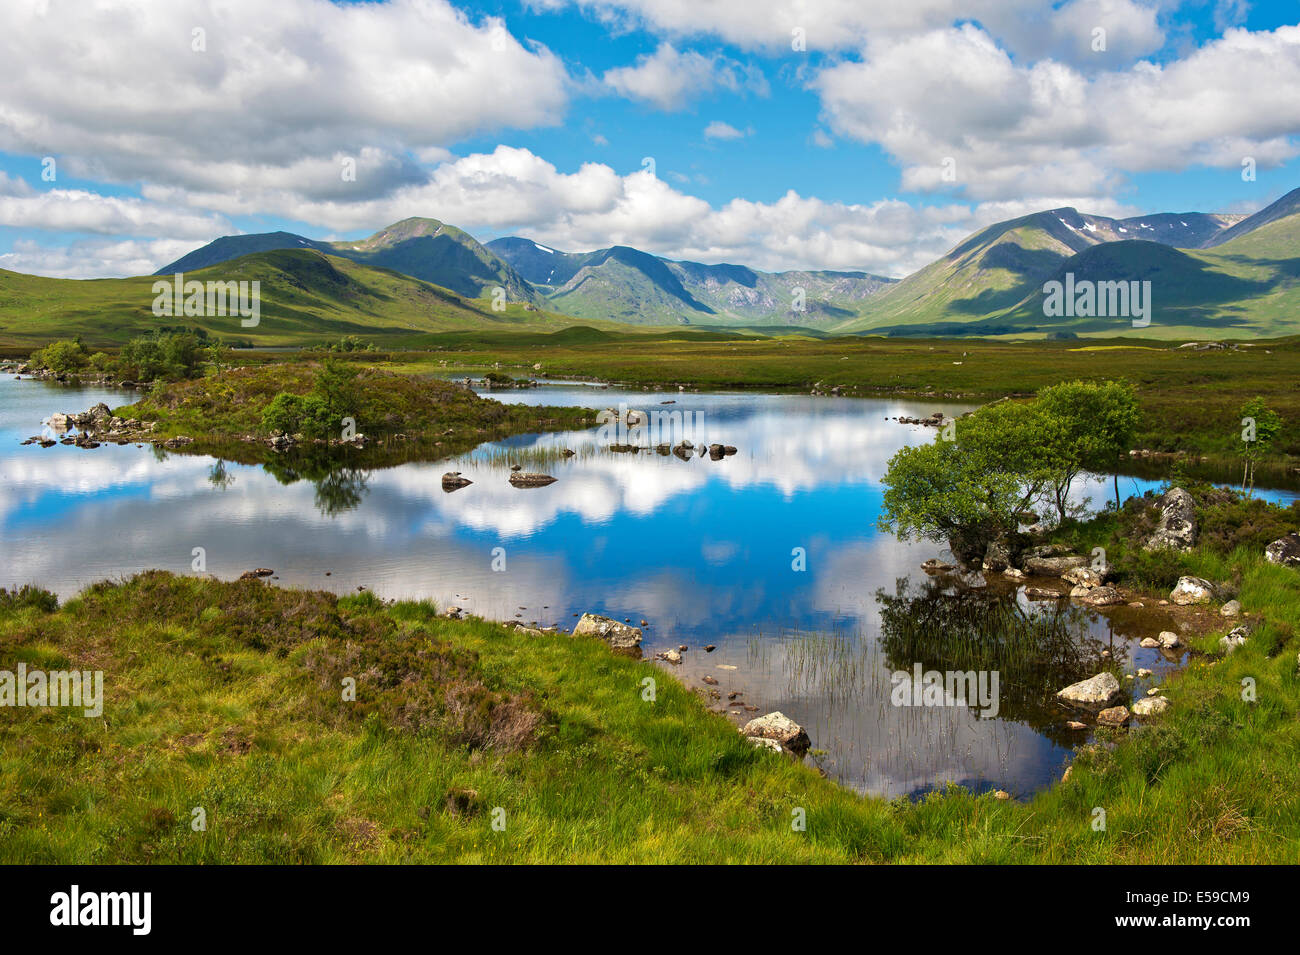 Cumulus clouds reflecting in a lake in the Scottish Highlands, Glencoe, Scotland, Great Britain - Stock Image